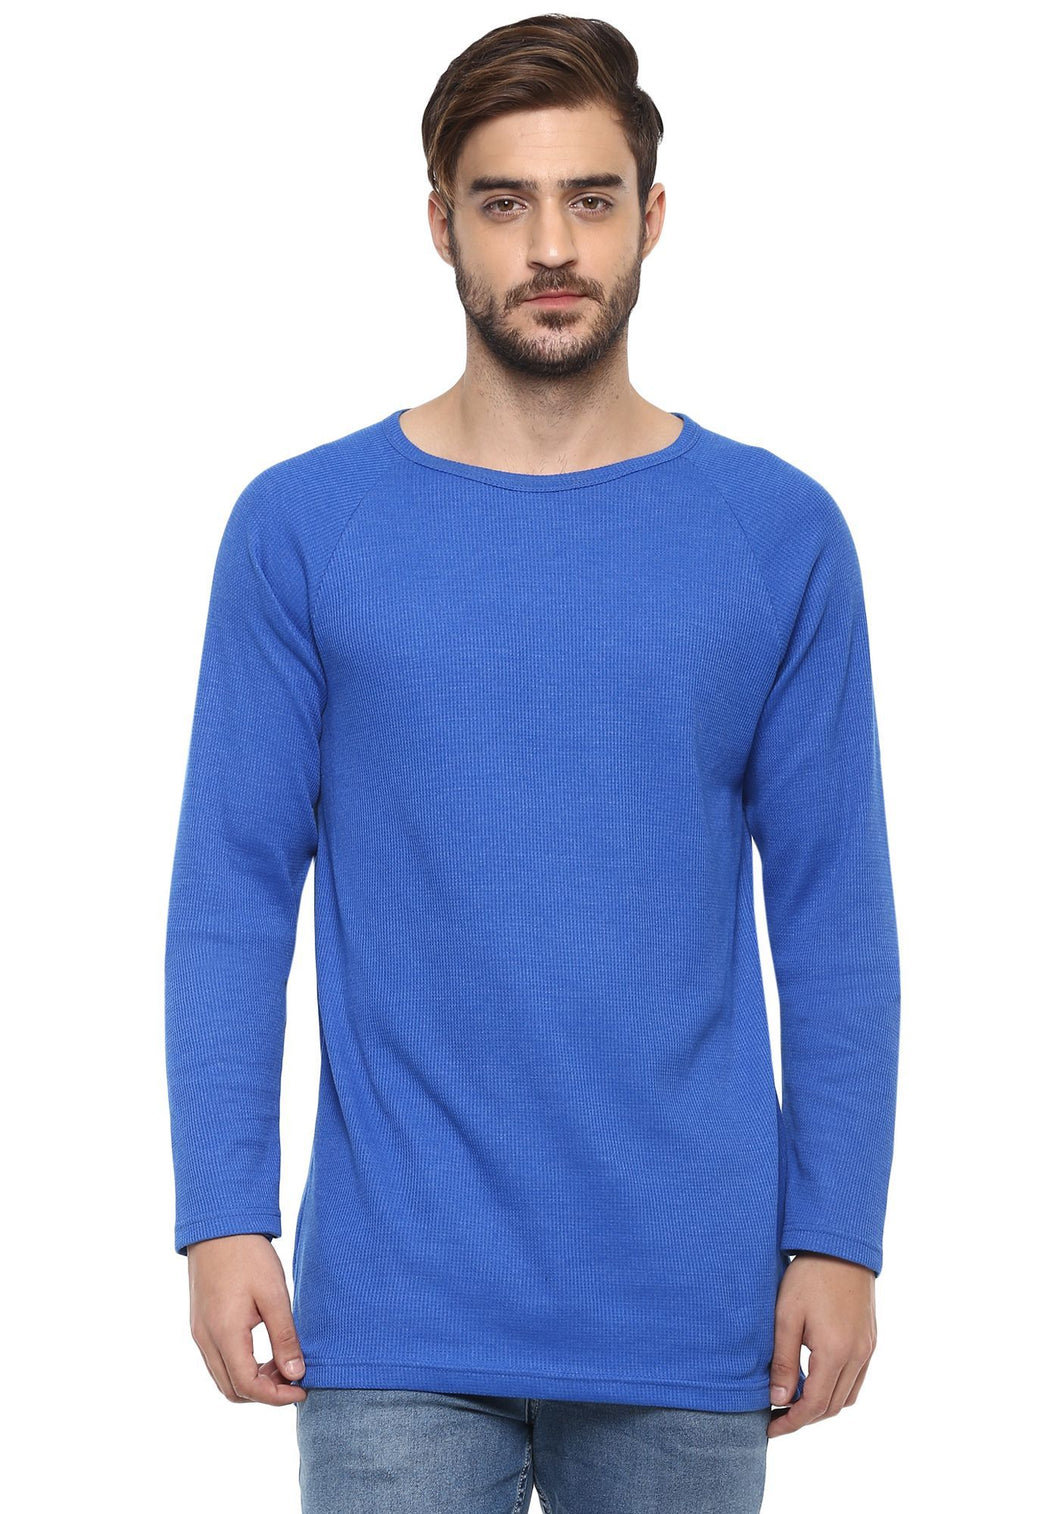 Full sleeve Royal Blue Self Stripes Round Neck Tee